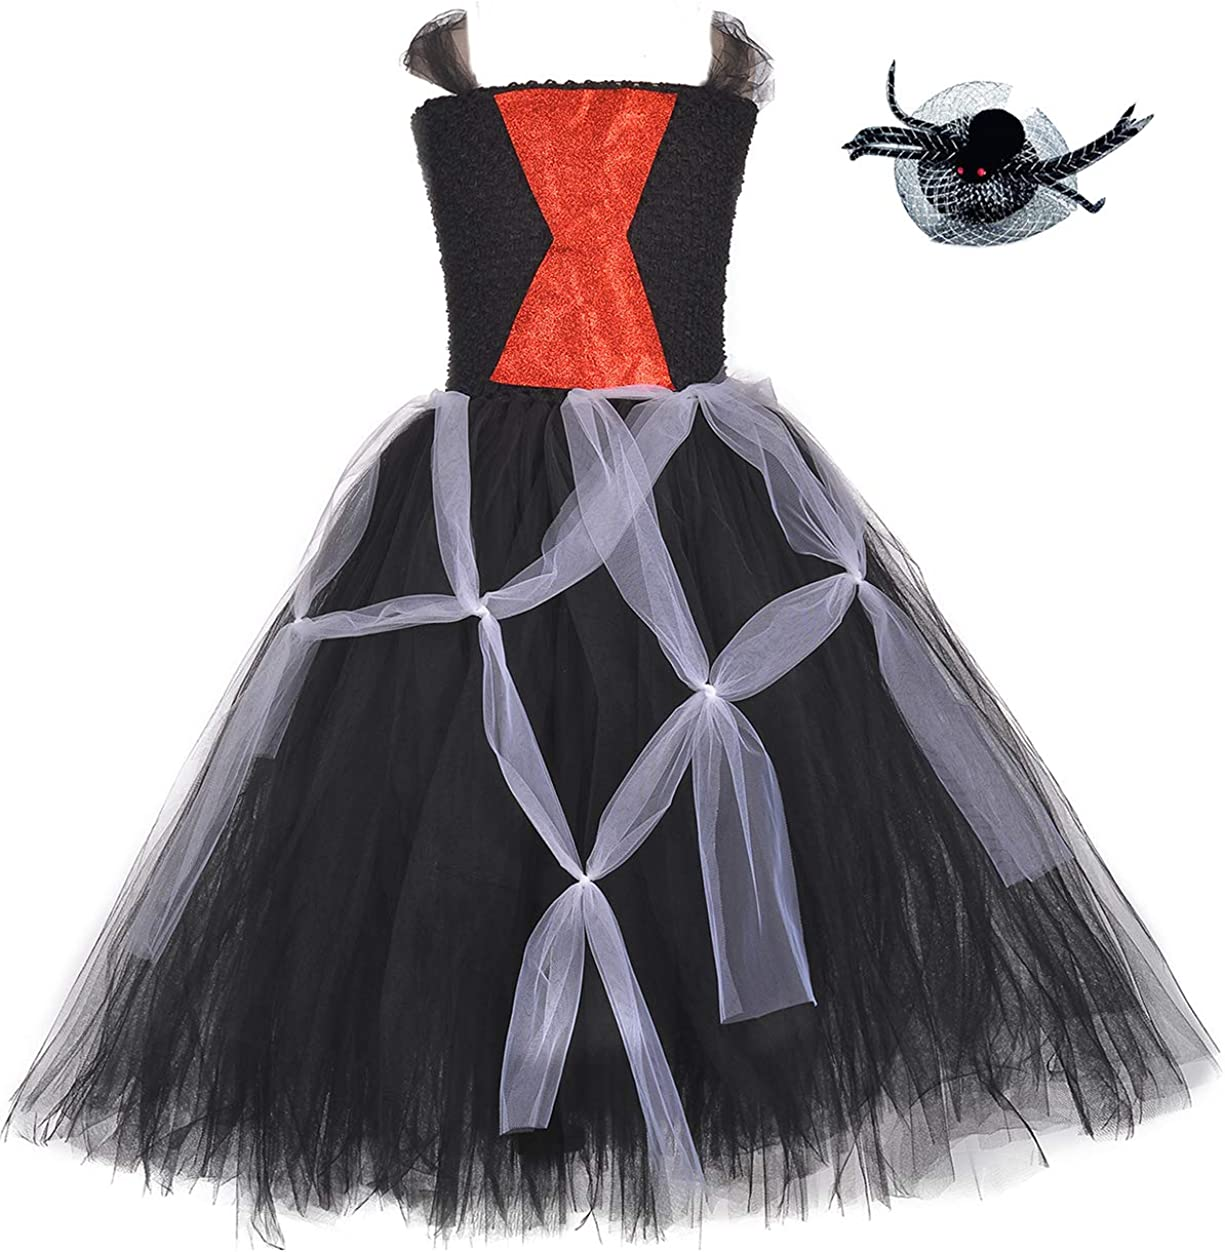 Tutu Dreams Halloween Spider Web Witch Tutu Costume for Girls 1-12Y Carnival Masquerade Party with Headwear